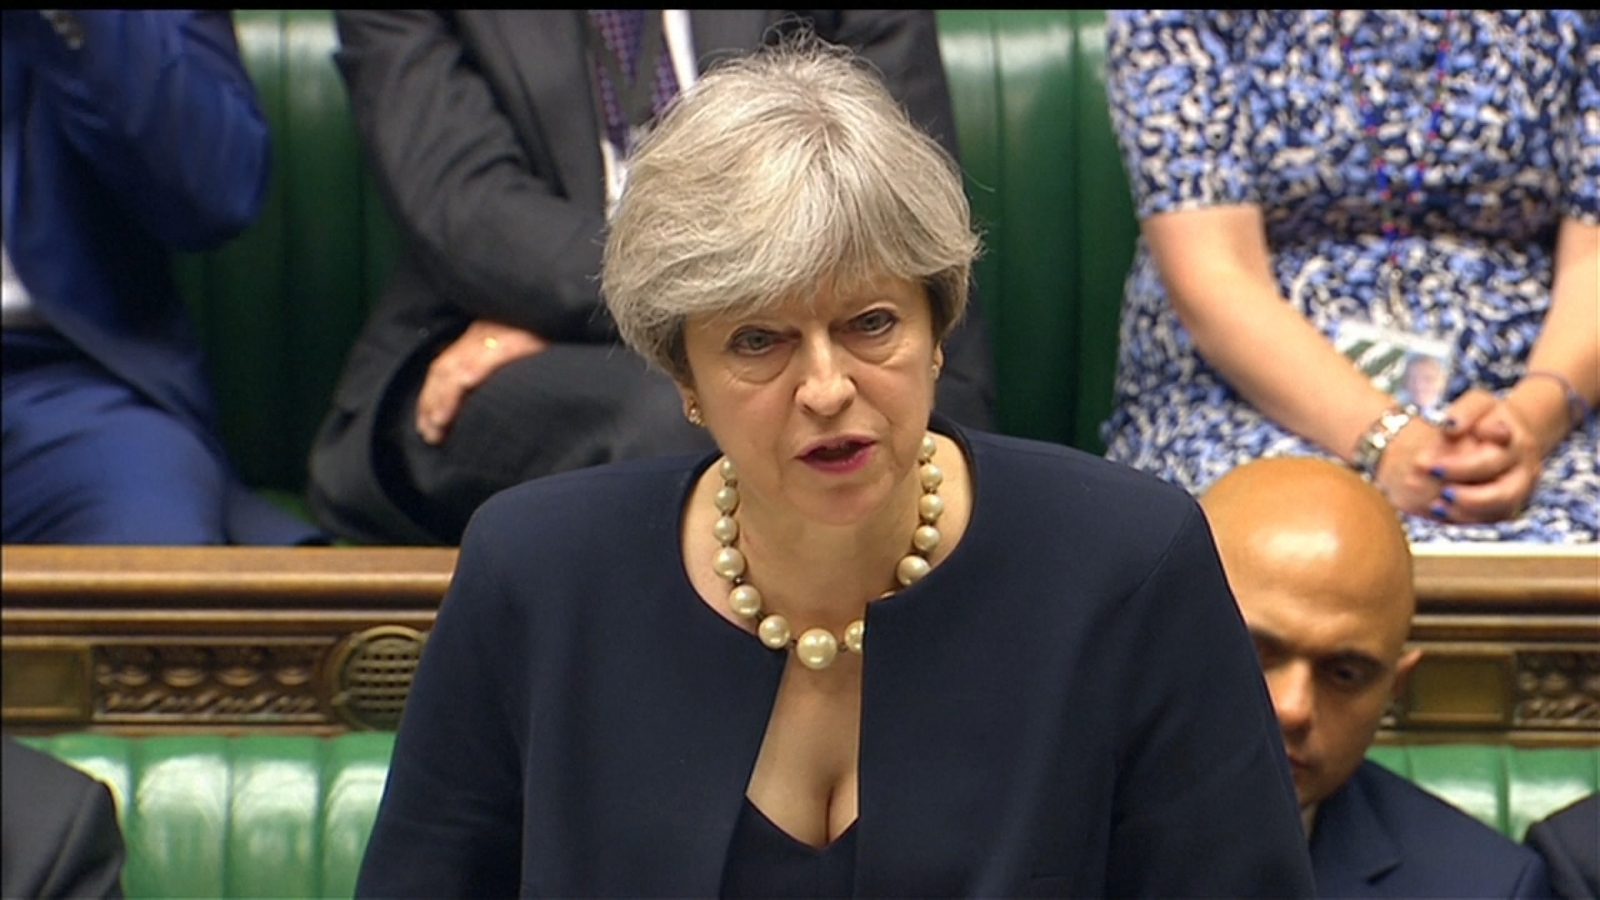 uk-prime-minister-theresa-may-says-combustible-cladding-used-on-other-buildings